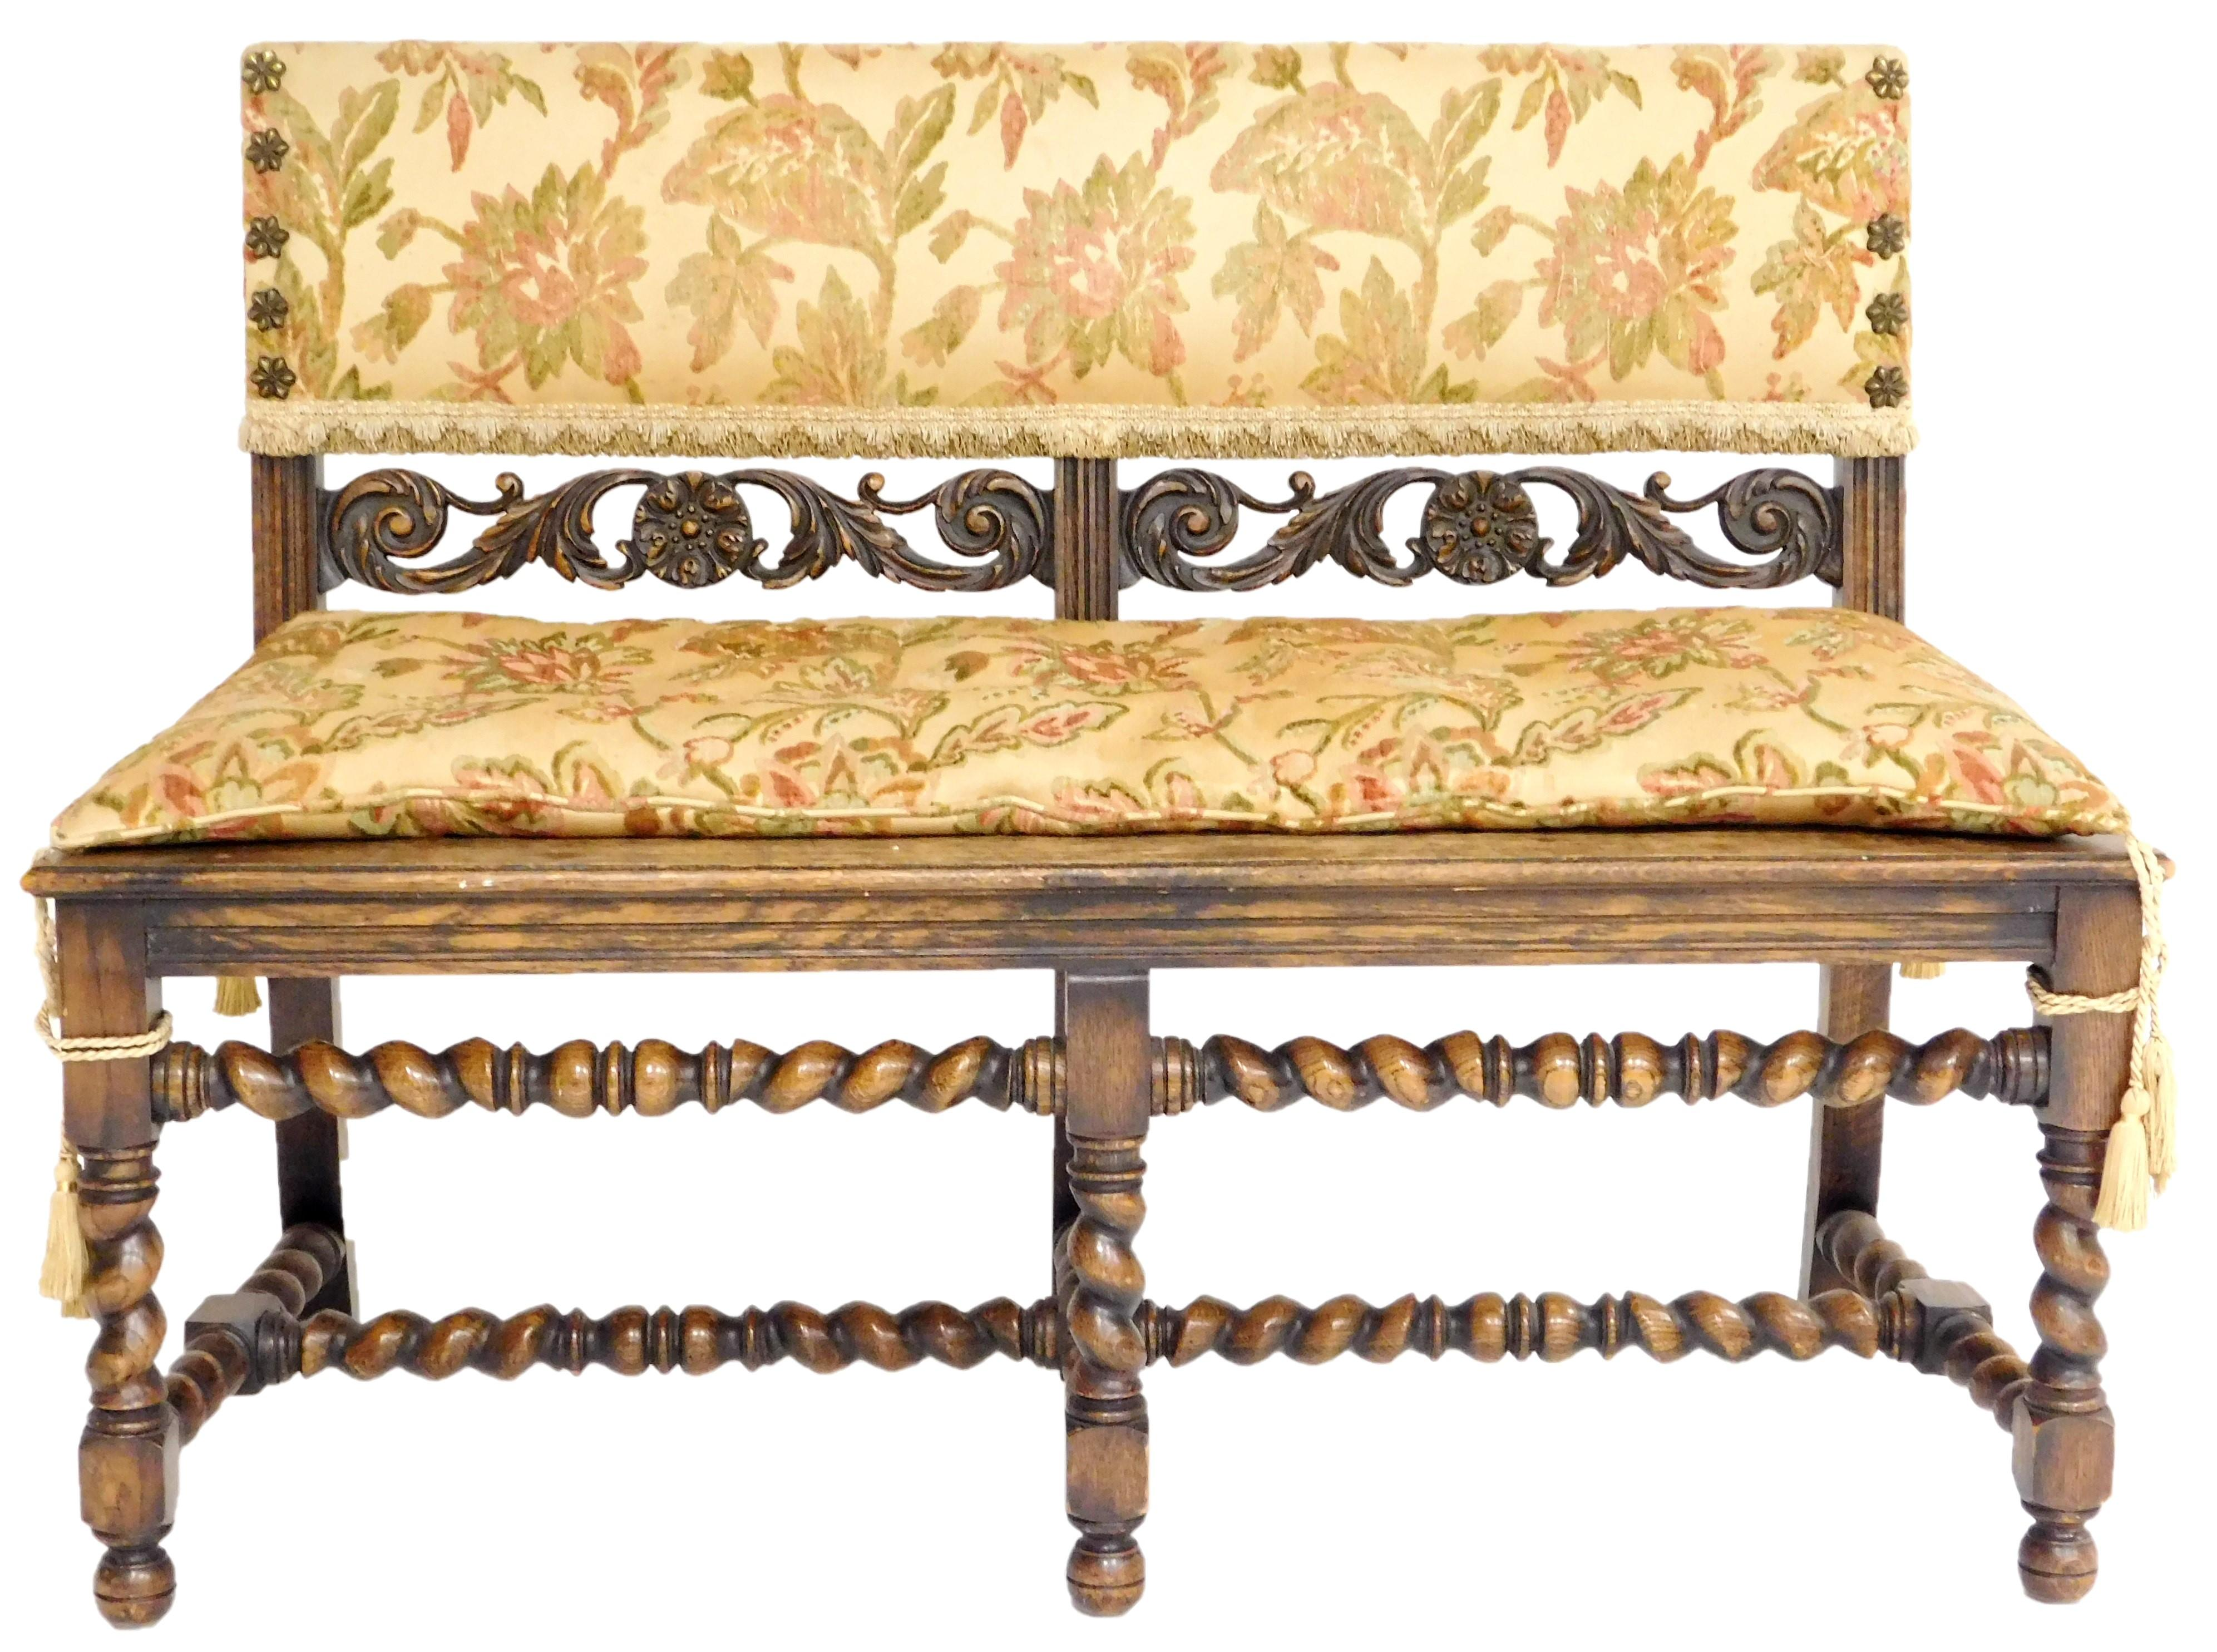 Renaissance style bench with upholstered back rest in tan floral pattern over carved and pierced scroll splat, oversized flower form...